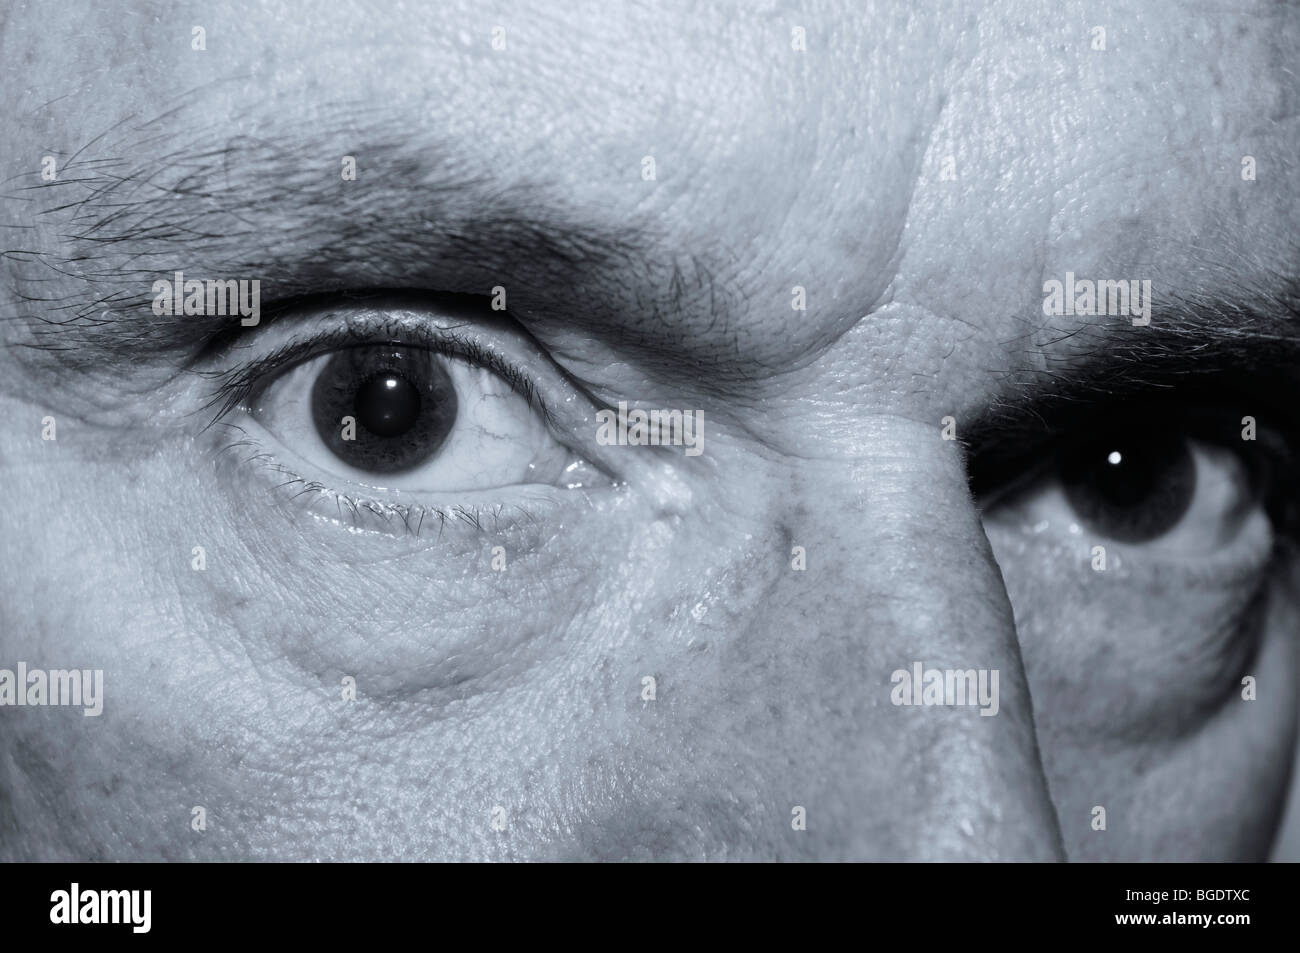 Sinister looking close up of an old mans eyes in monochrome - Stock Image